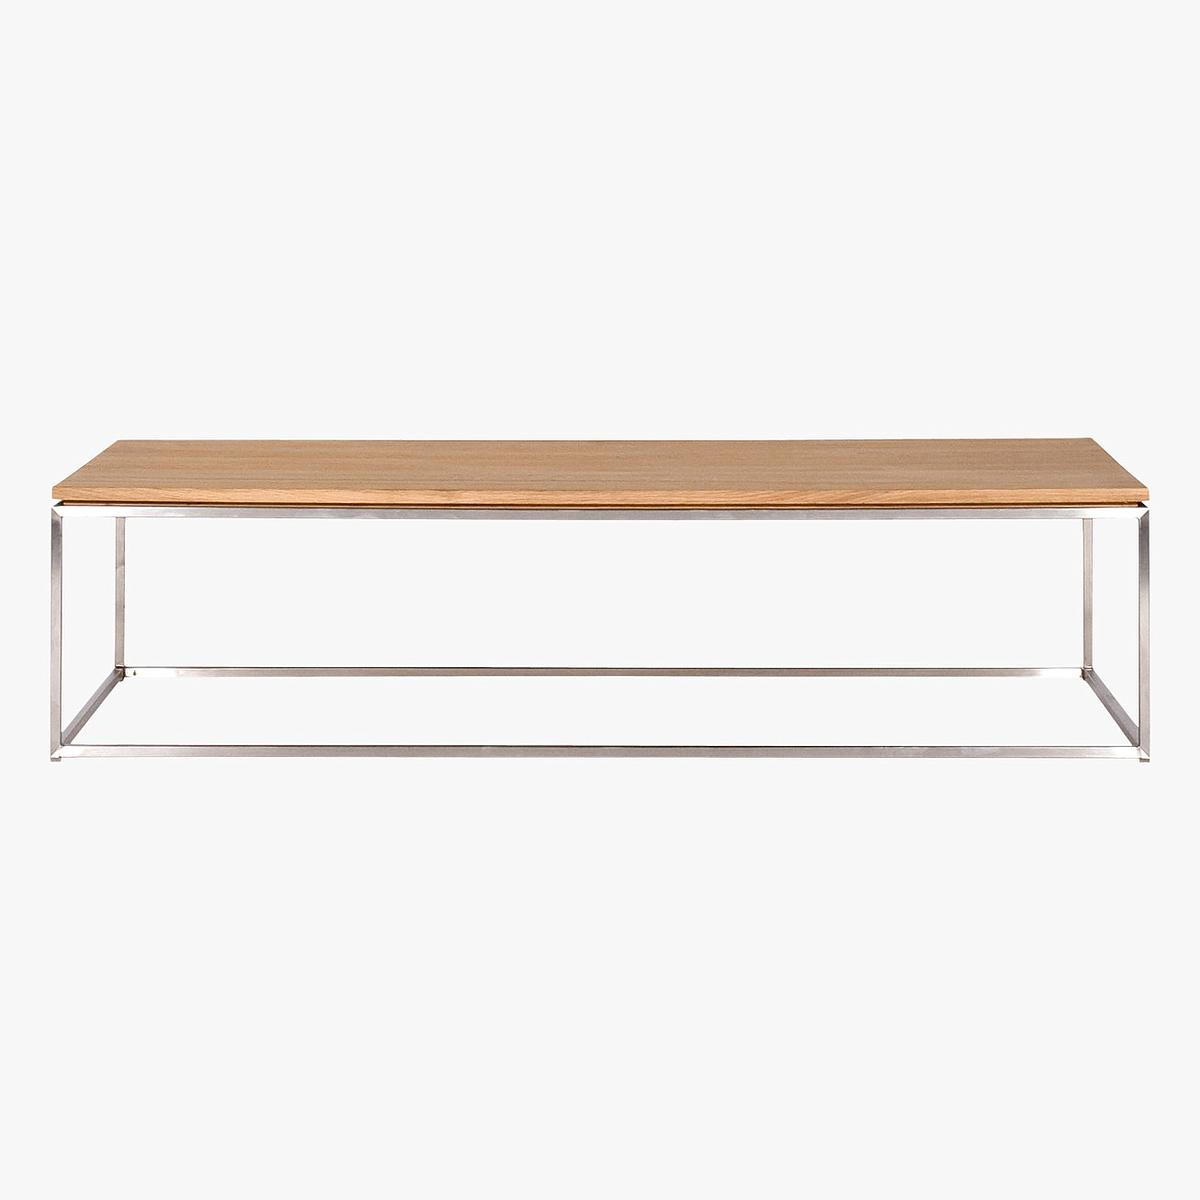 Table basse THIN Ethnicraft 120x70 chêne